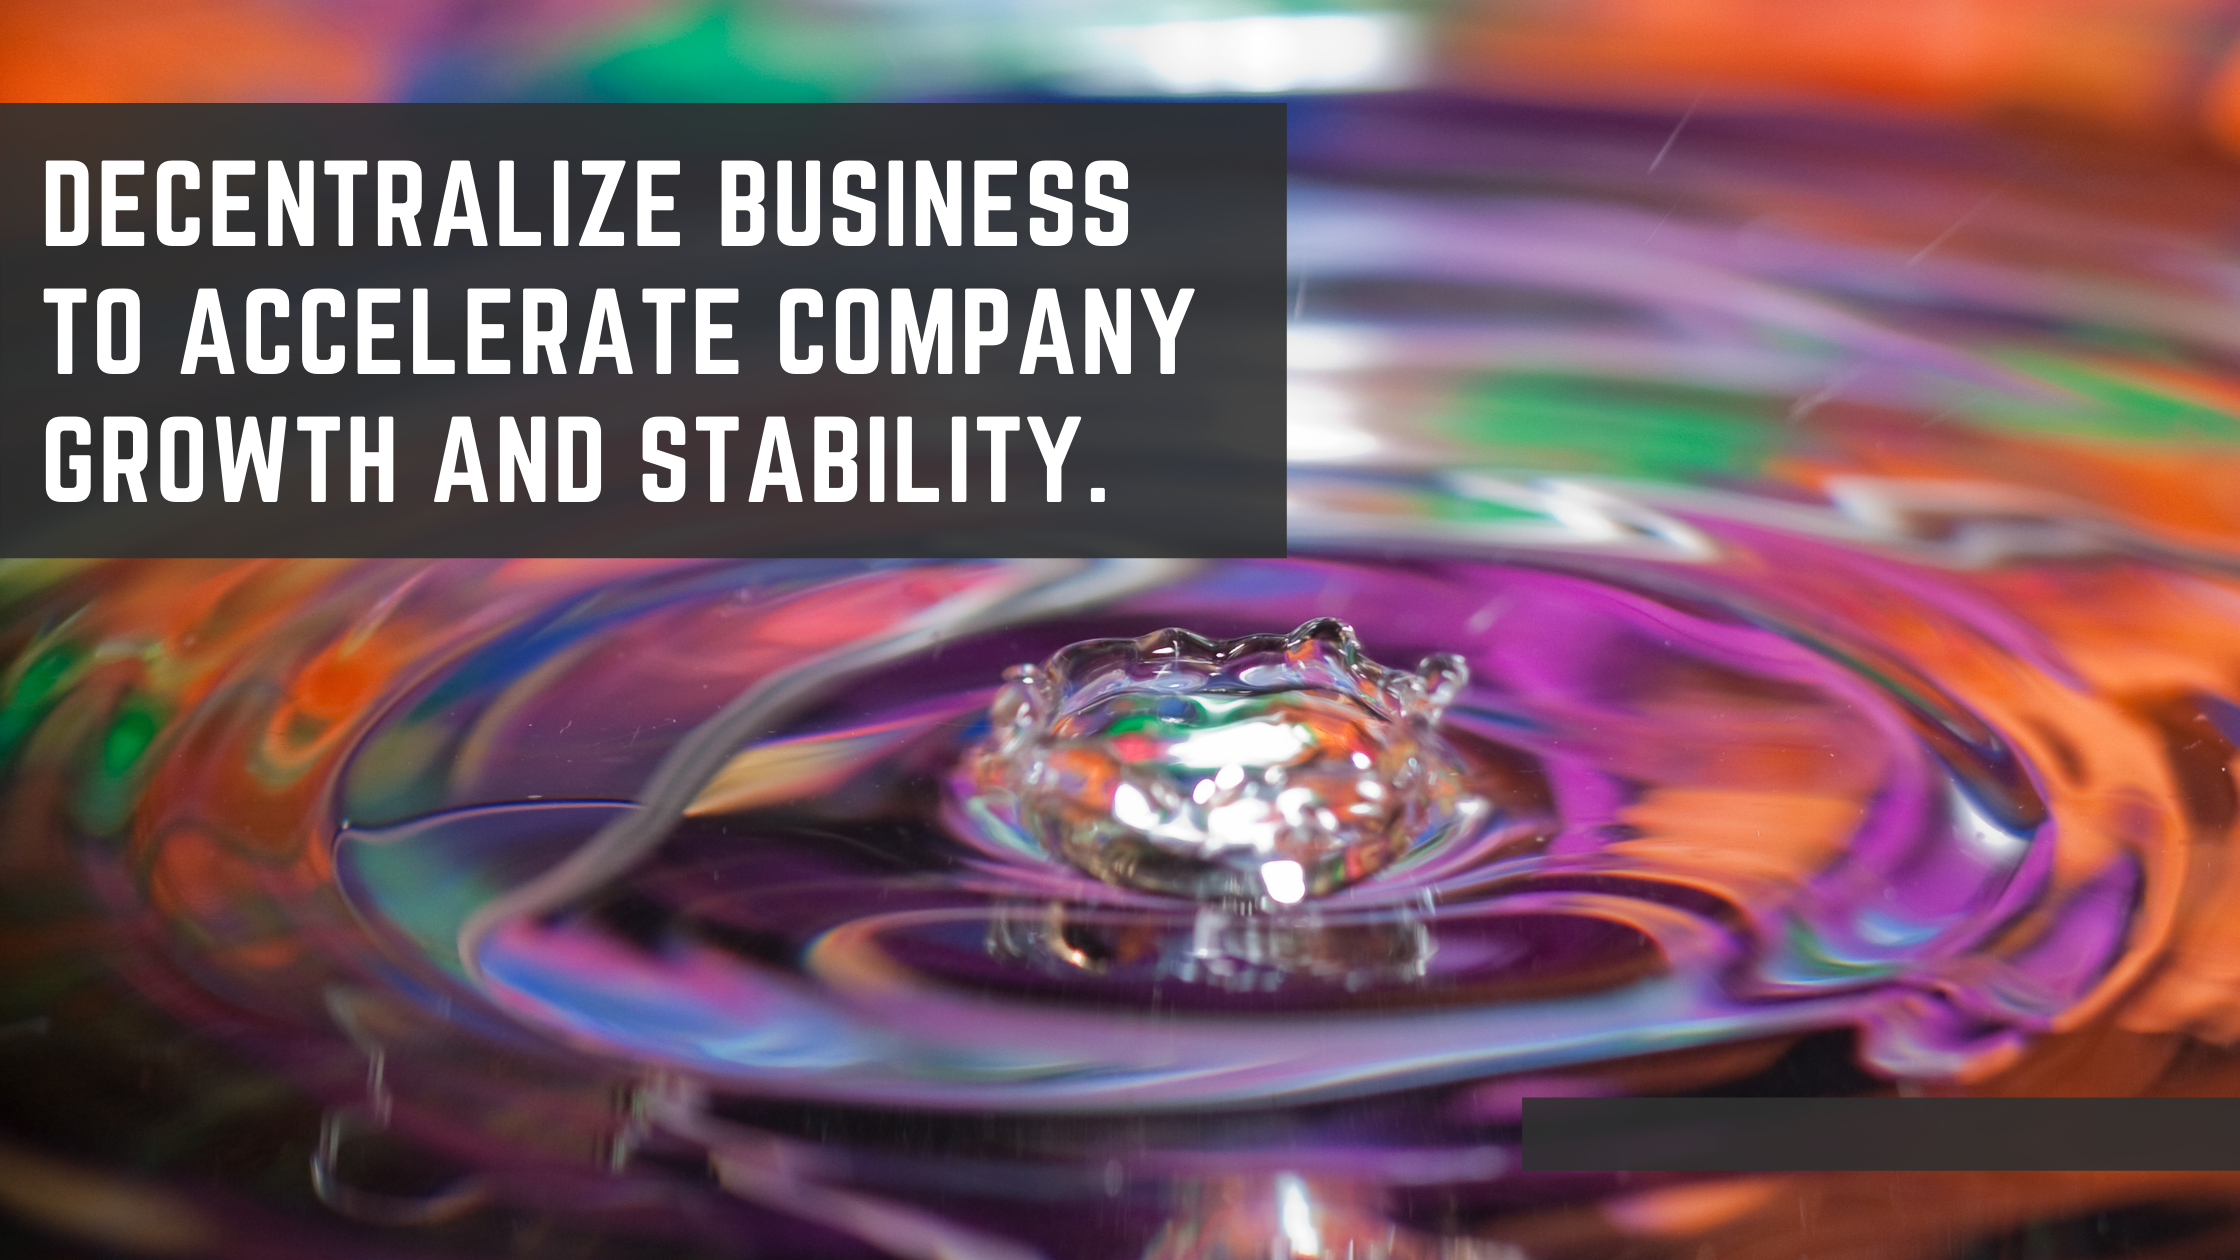 Decentralizing Business to Accelerate Company Growth and Stability